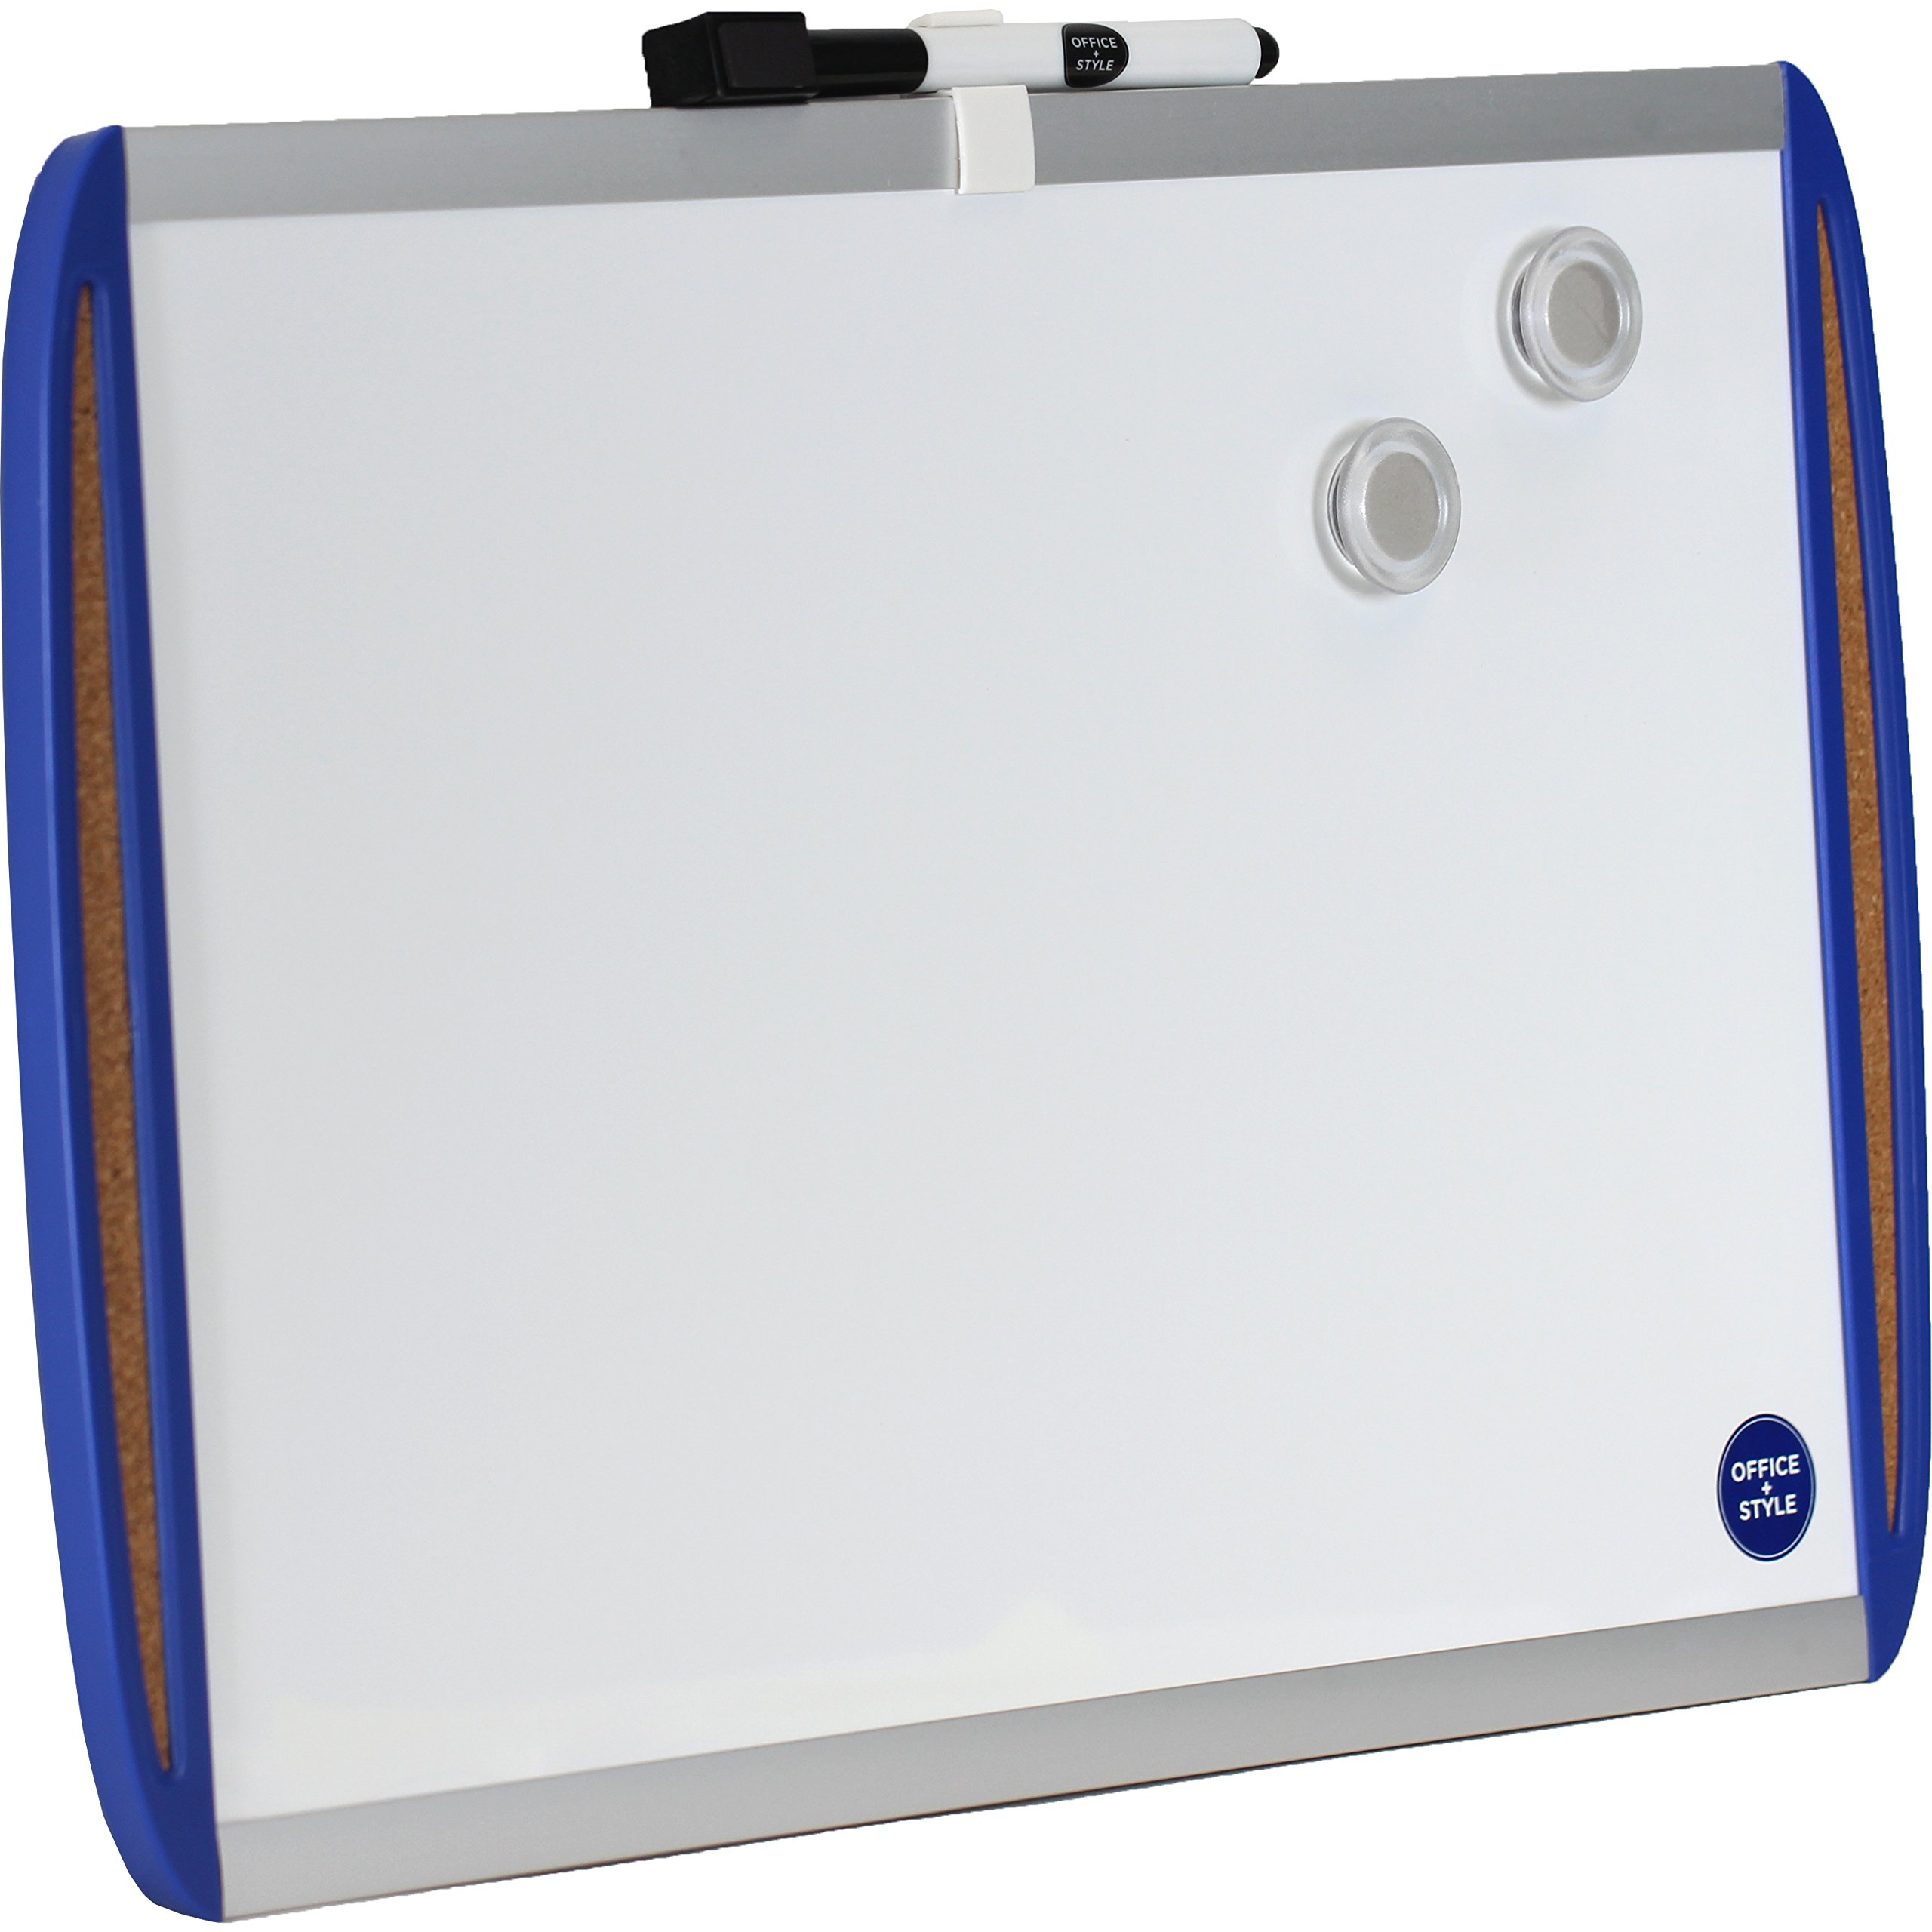 Office Style Magnetic Dry Erase Board with Corkboard Side Panels, Blue, 11''x17''